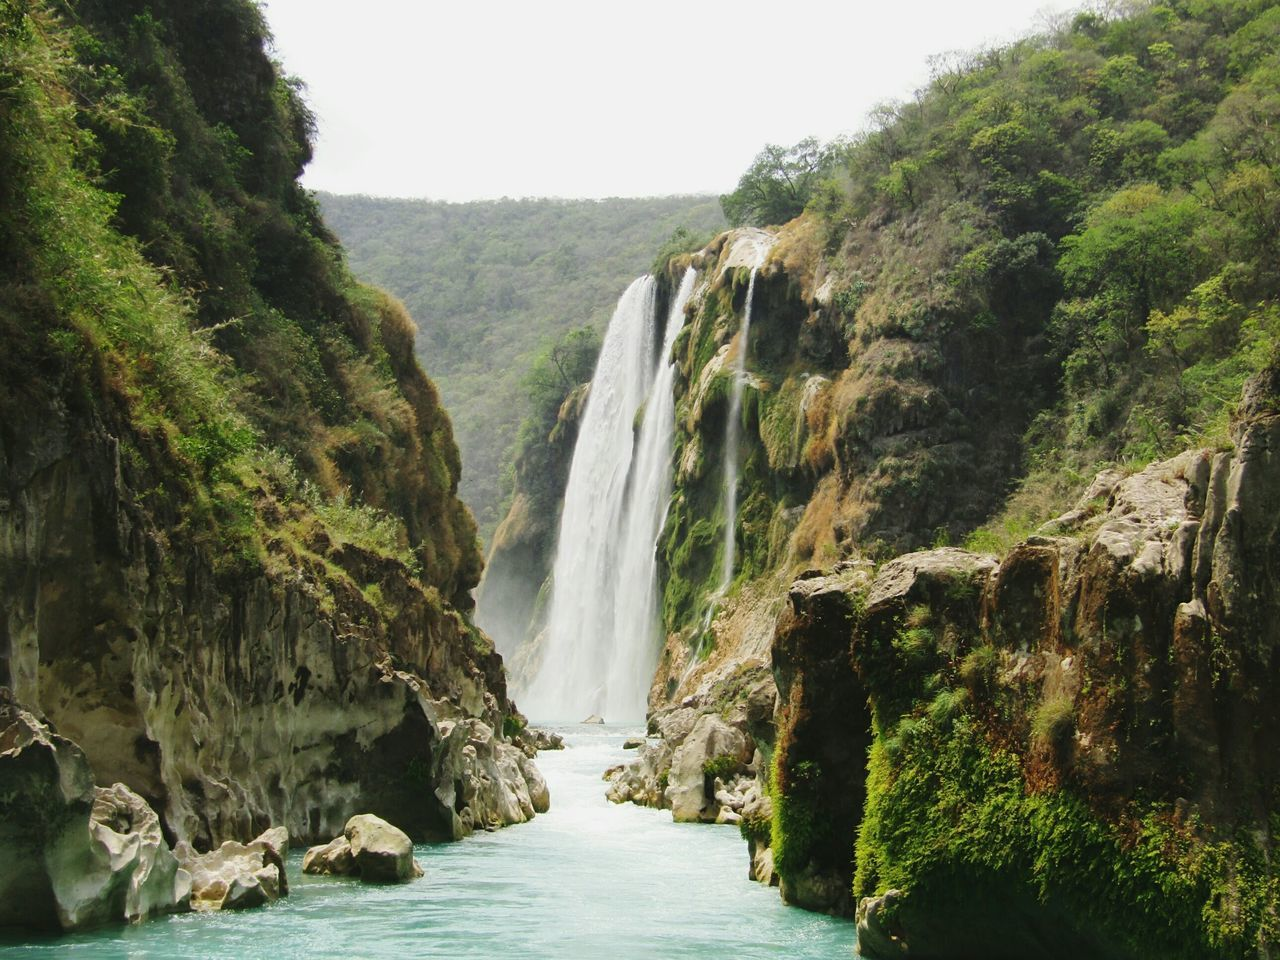 Waterfall Beauty In Nature River Power In Nature Scenics Amazing View Adventure Time Tamul, San Luis Potosí, México :3